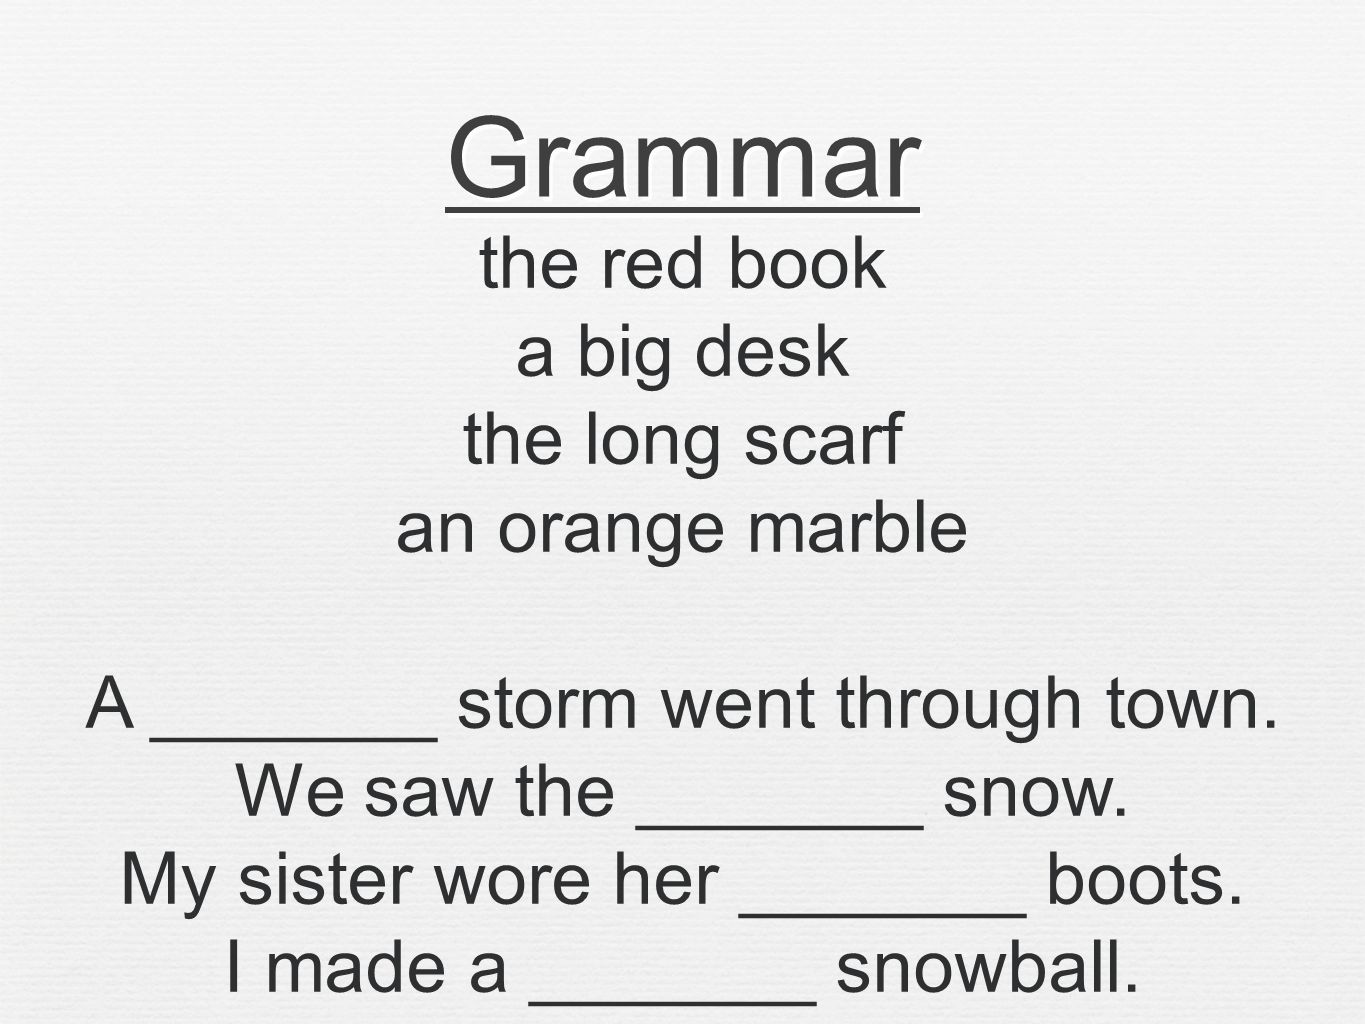 Grammar the red book a big desk the long scarf an orange marble A _______ storm went through town.